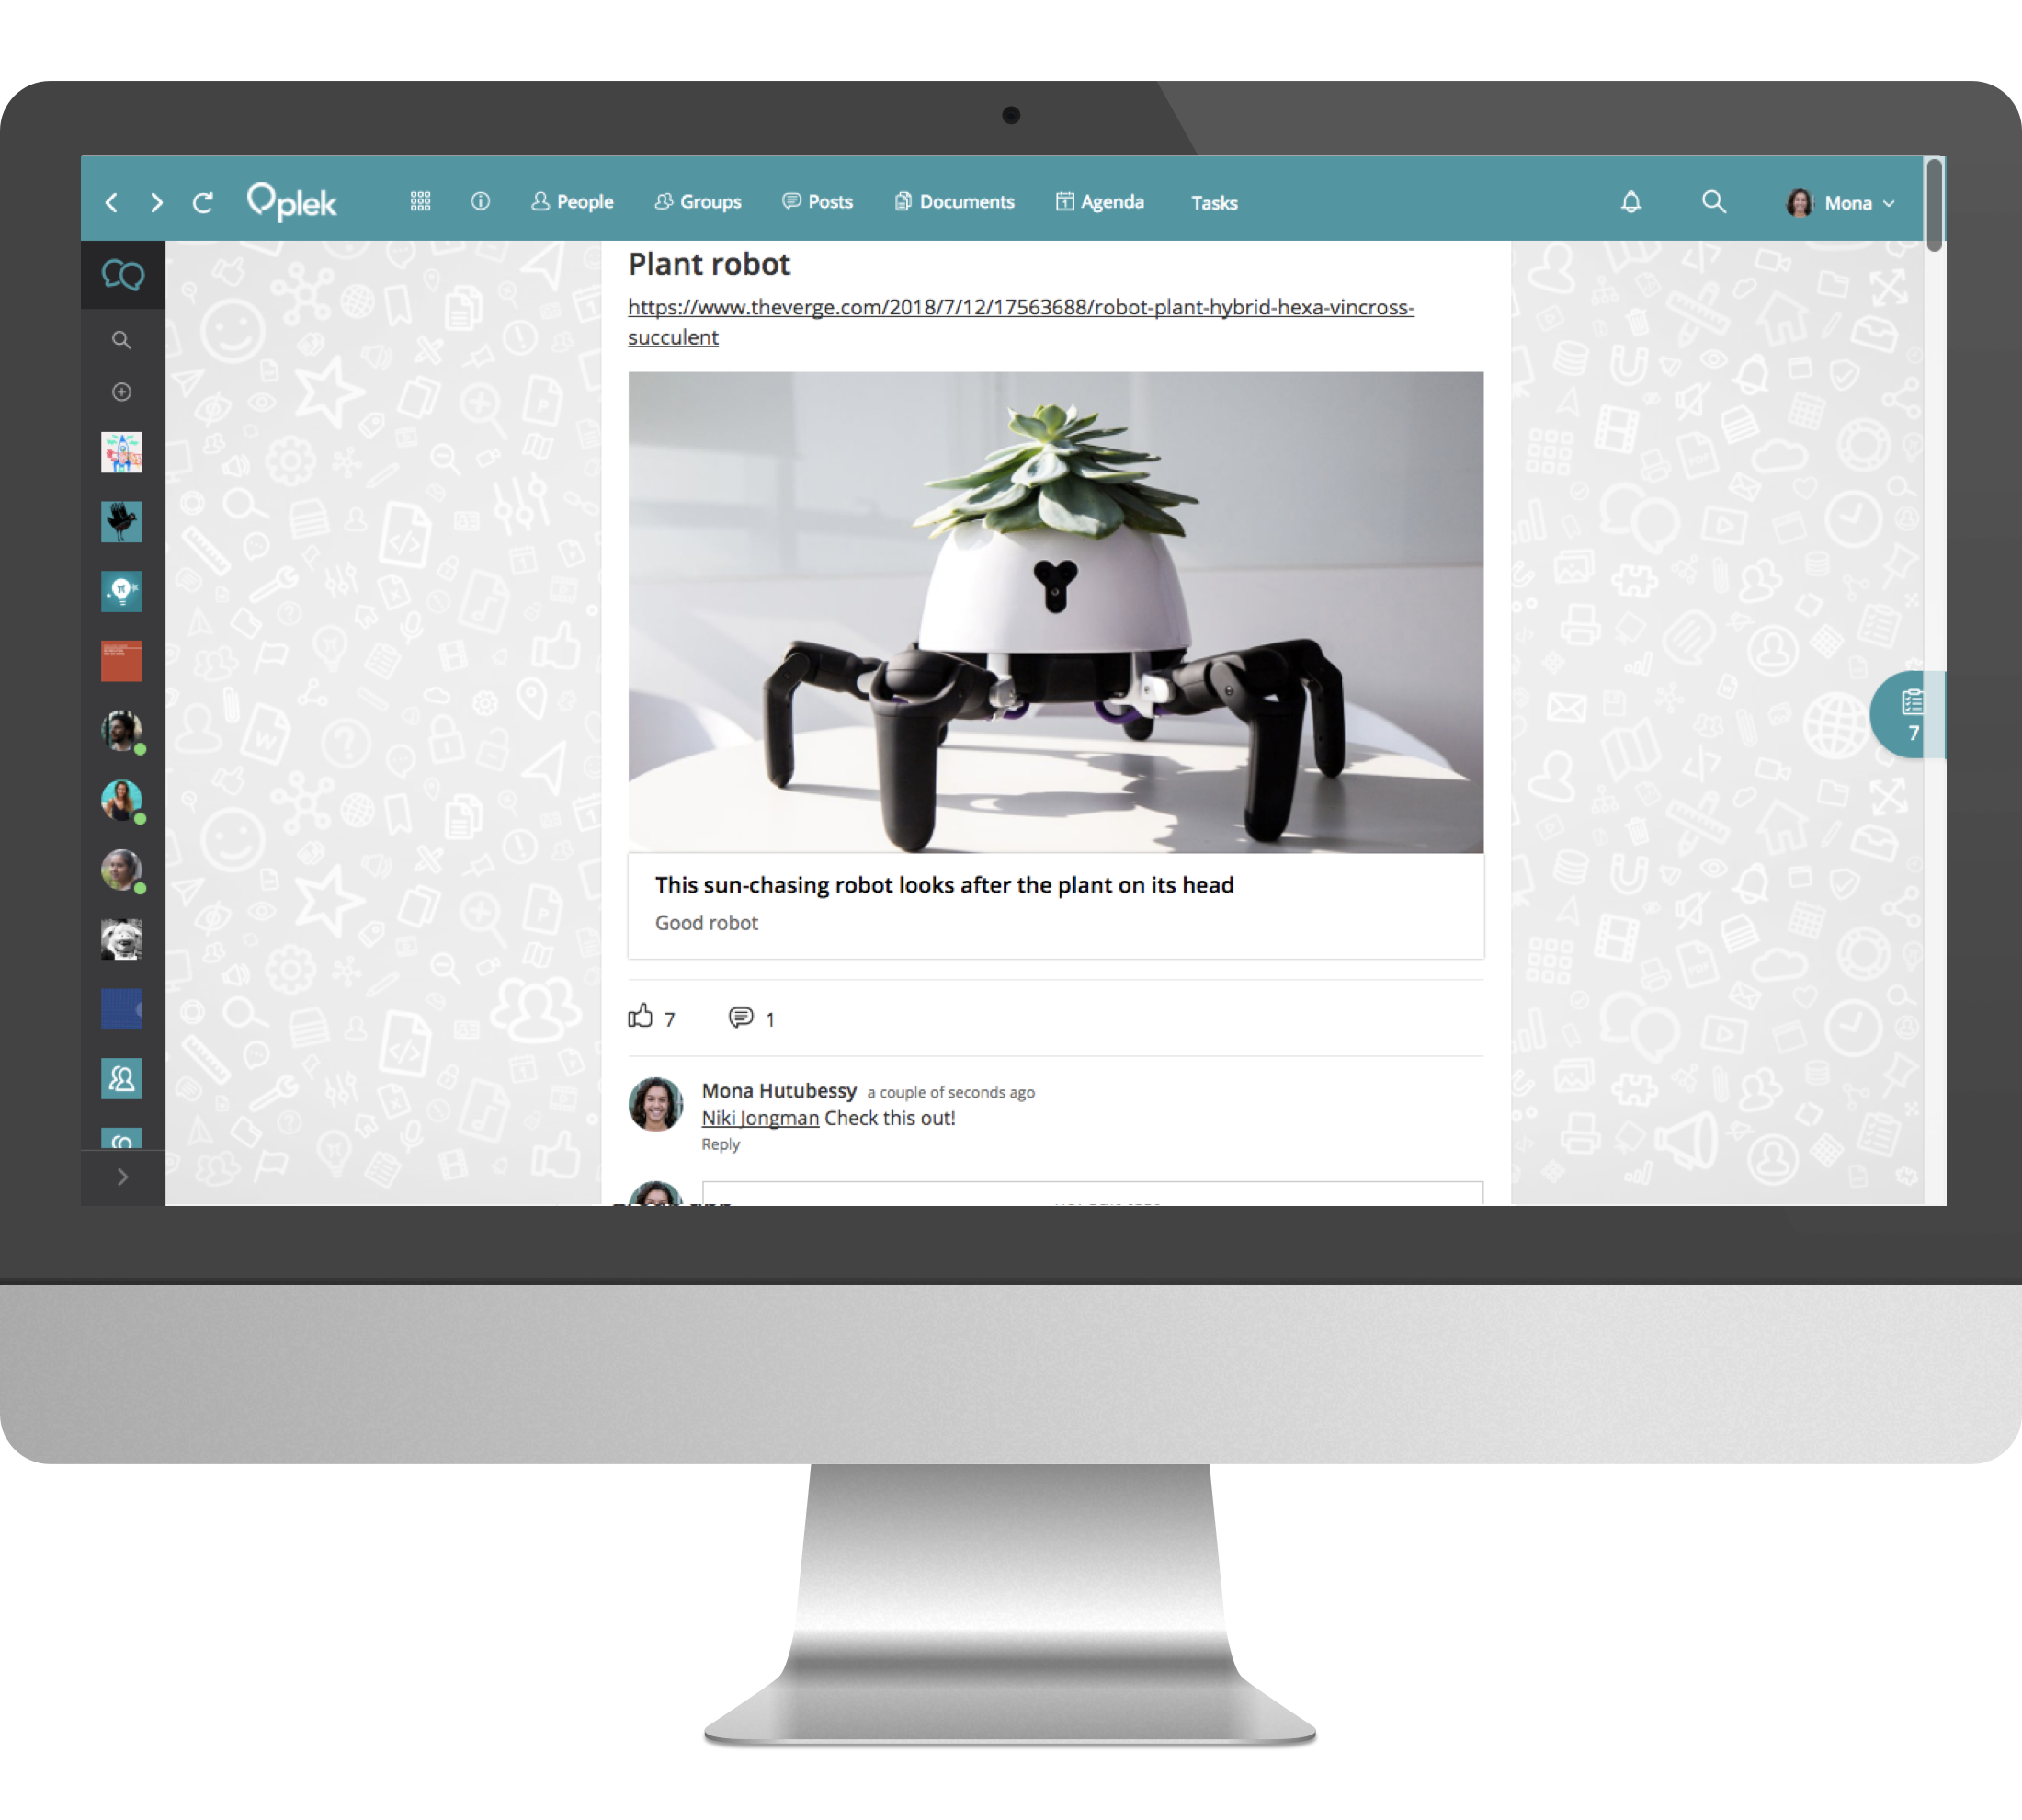 Publish a post, comment on other people's posts or tag a colleague to ask for their opinion.